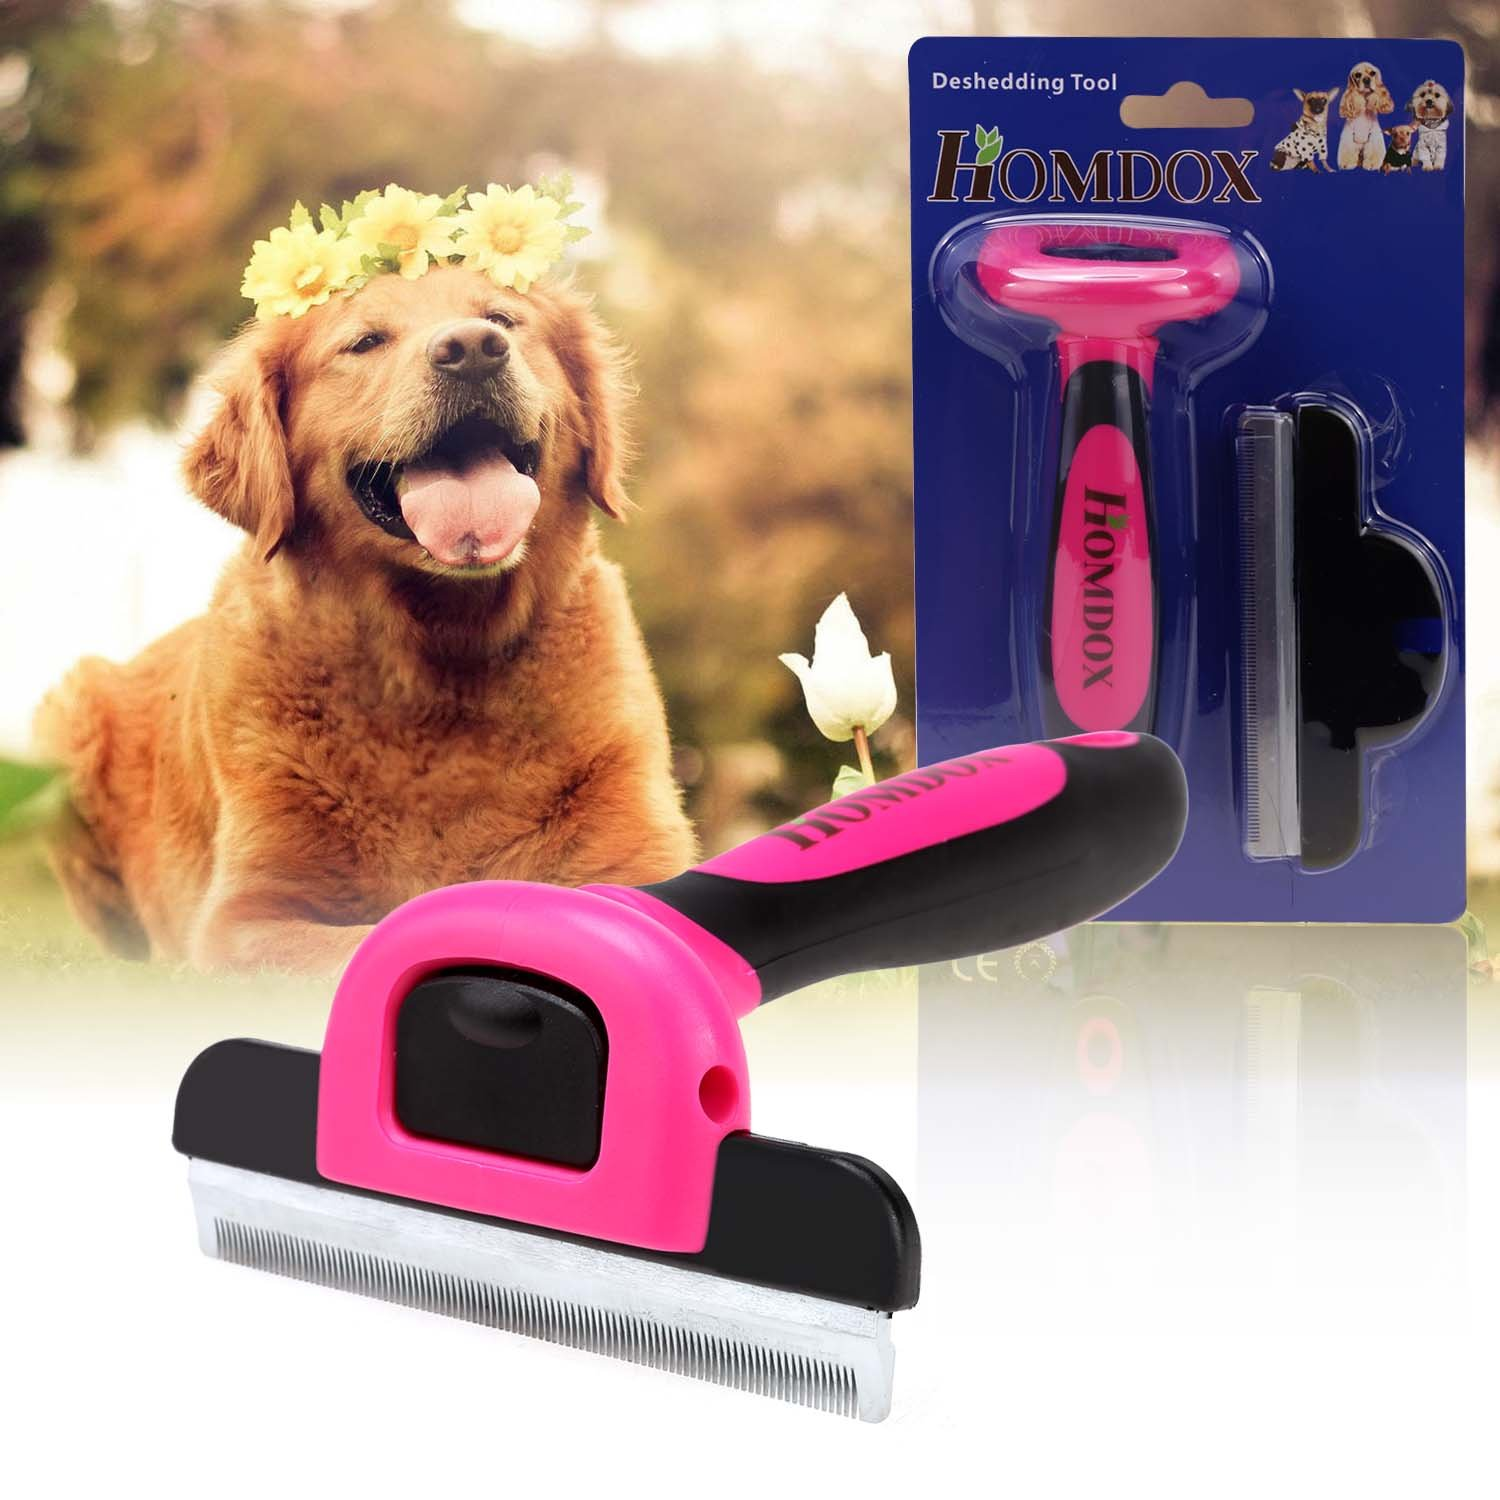 Dog Grooming Brush for Shedding Pet Grooming Tool Deshedding Tool For Small Medium Large Dogs and Cats